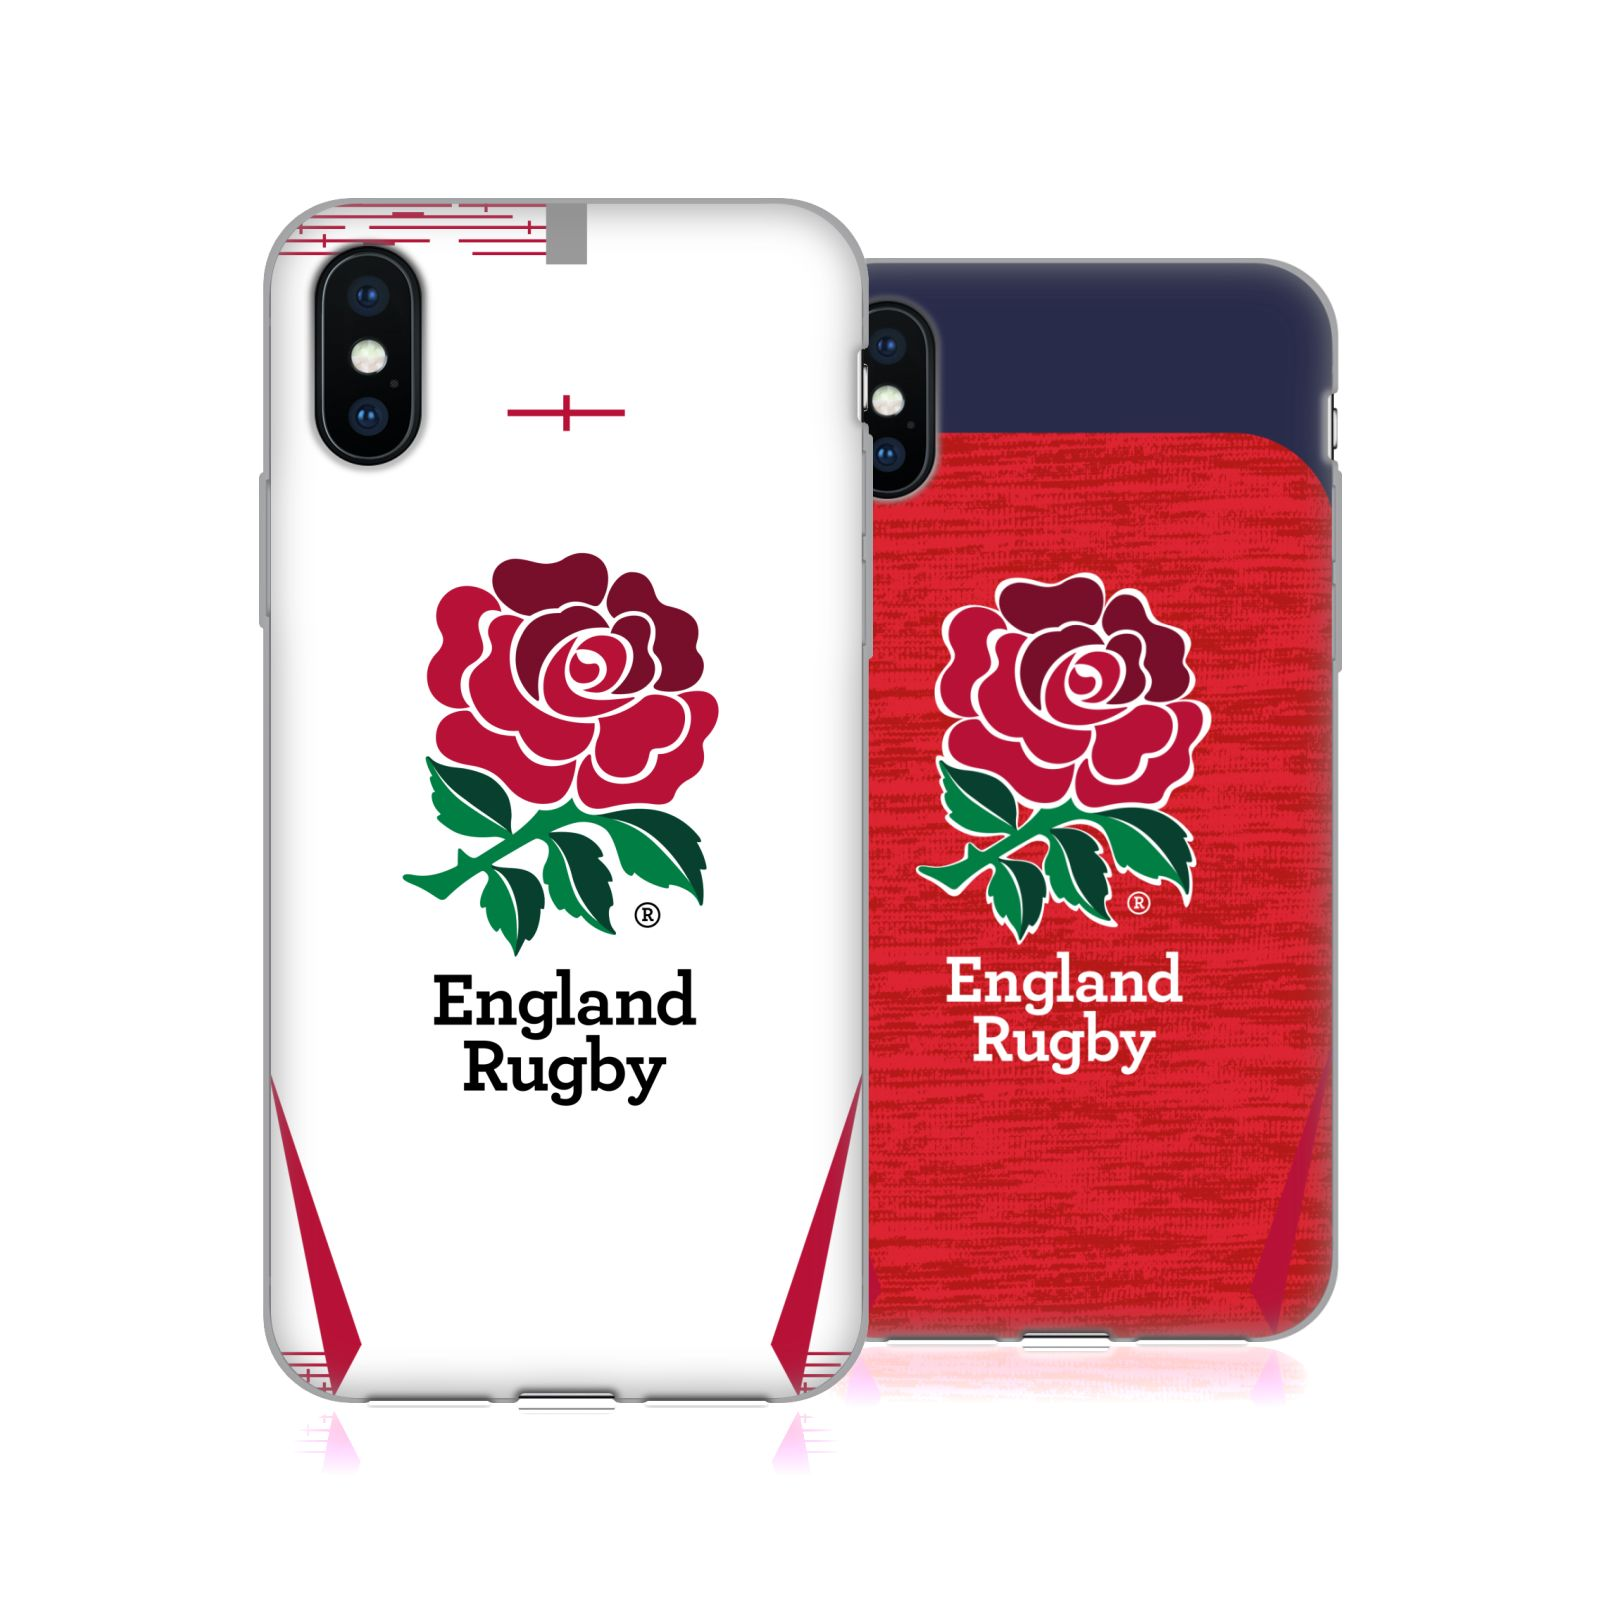 England Rugby Union <!--translate-lineup-->2019/20 Kit<!--translate-lineup-->